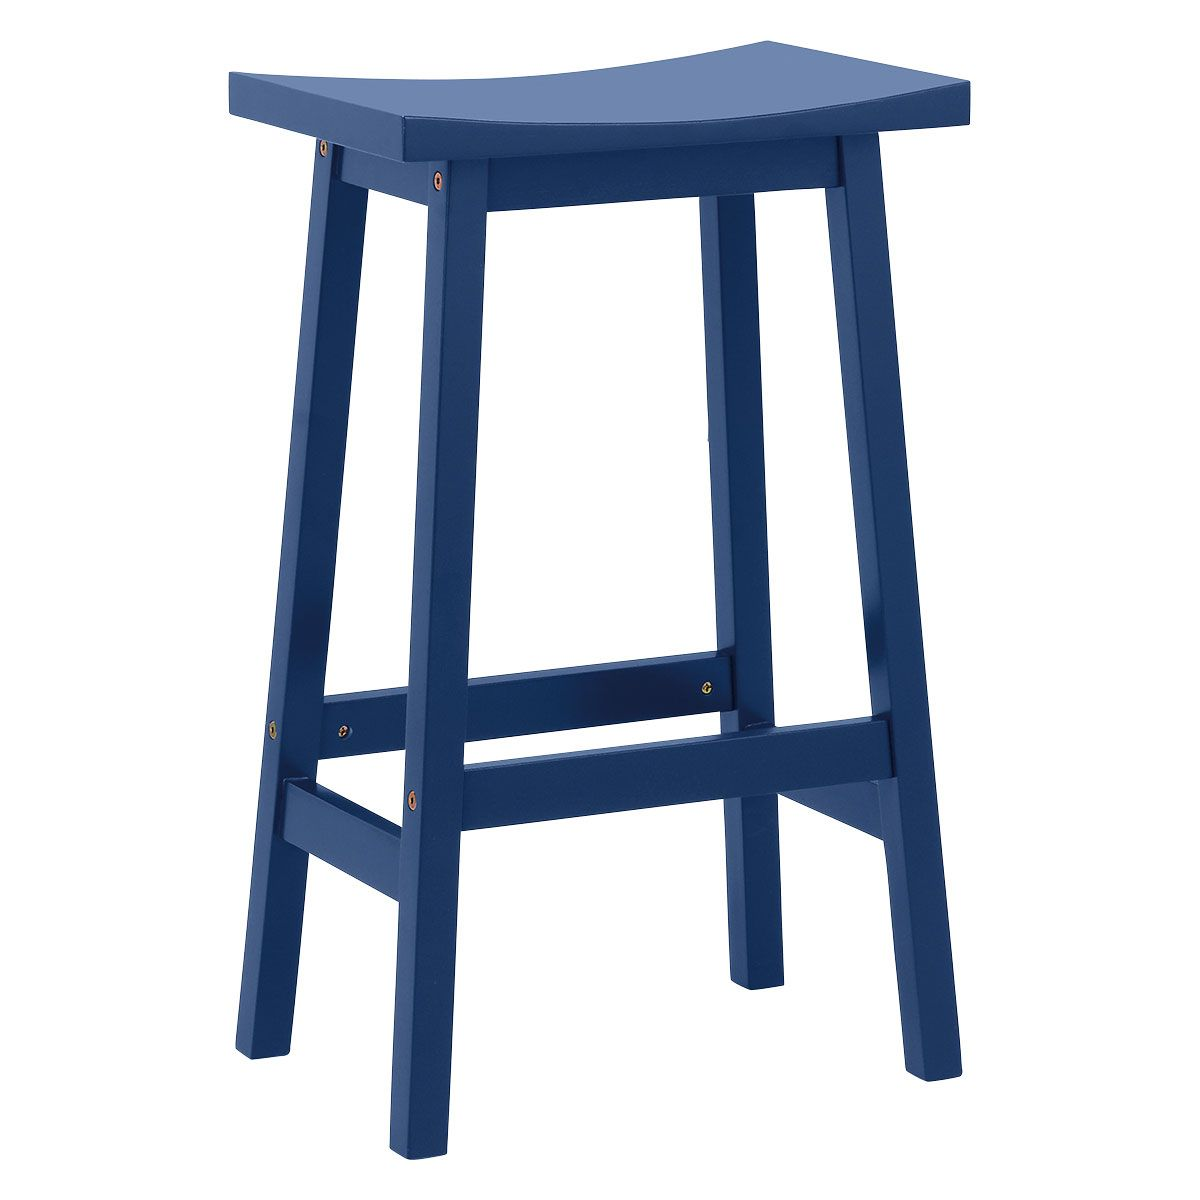 Tuck Navy Blue Painted Bar Stool H67cm In 2020 Blue Bar Stools Painted Bar Stools Bar Stools